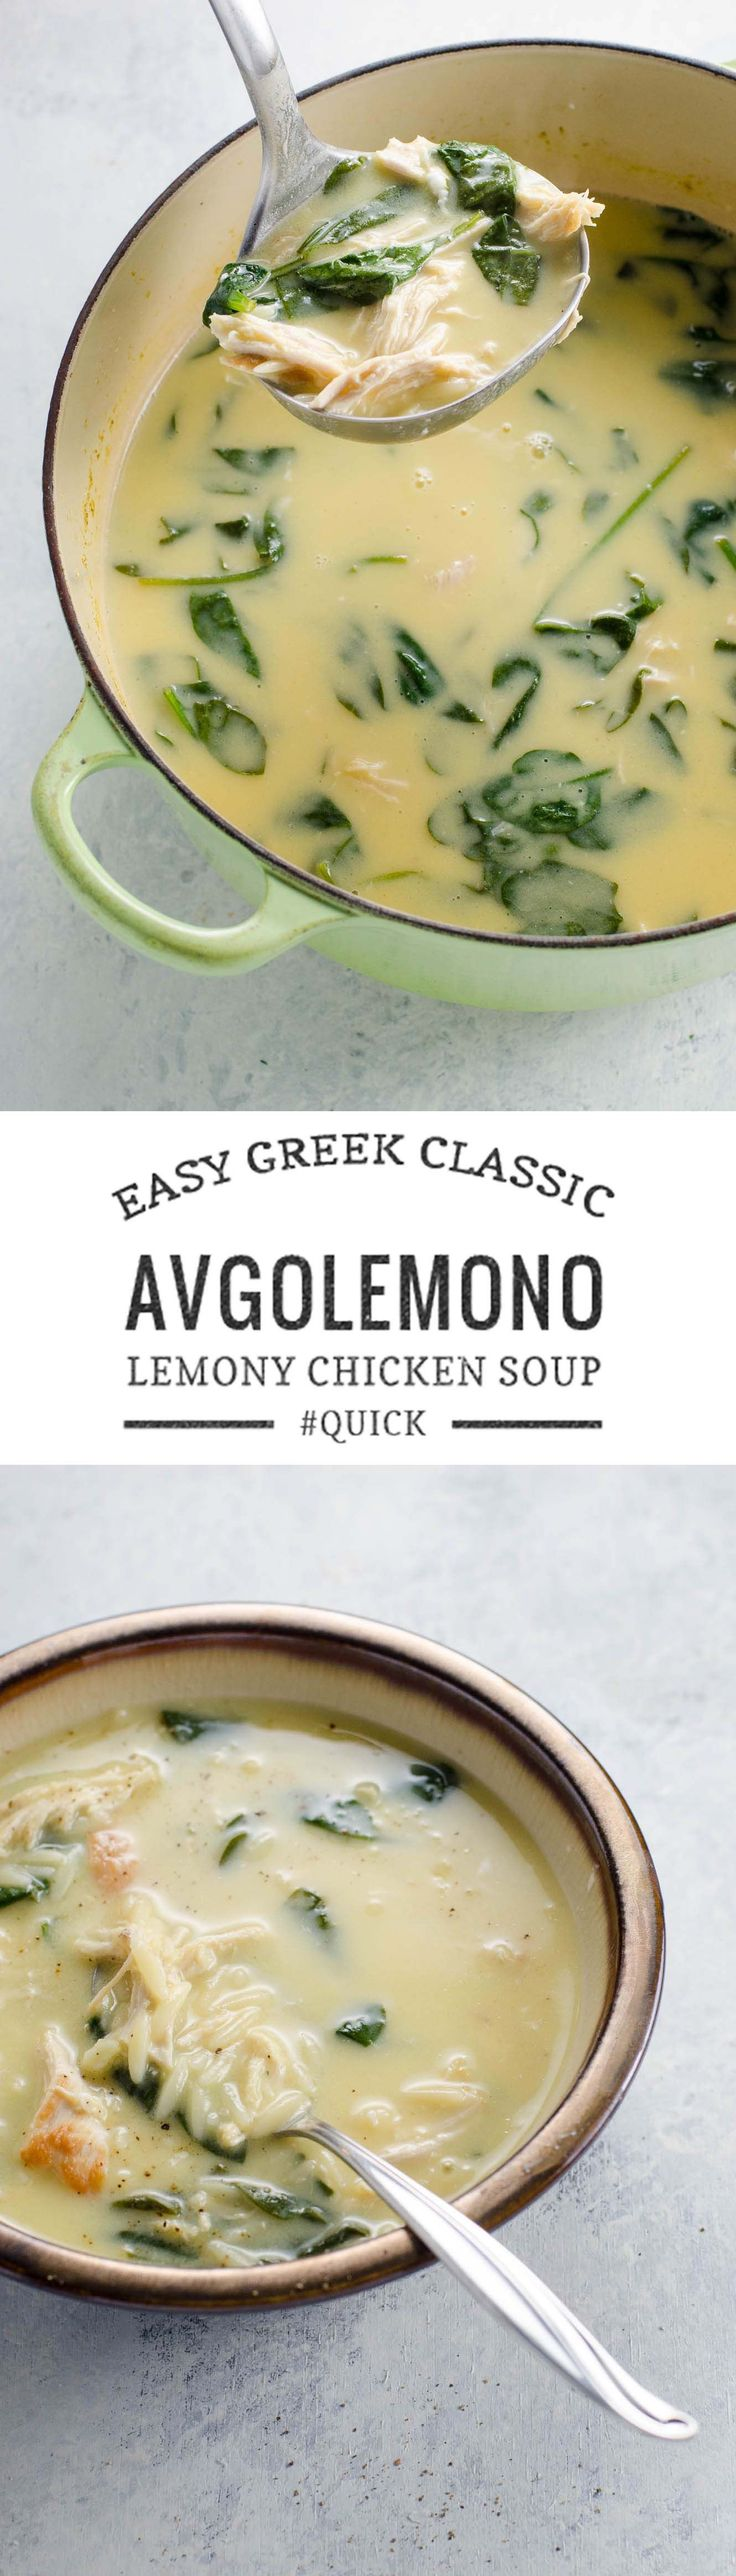 Avgolemono soup (Greek lemony chicken soup) with orzo and spinach is quick, easy and satisfying, made with only six ingredients in about 20 minutes. via @umamigirl